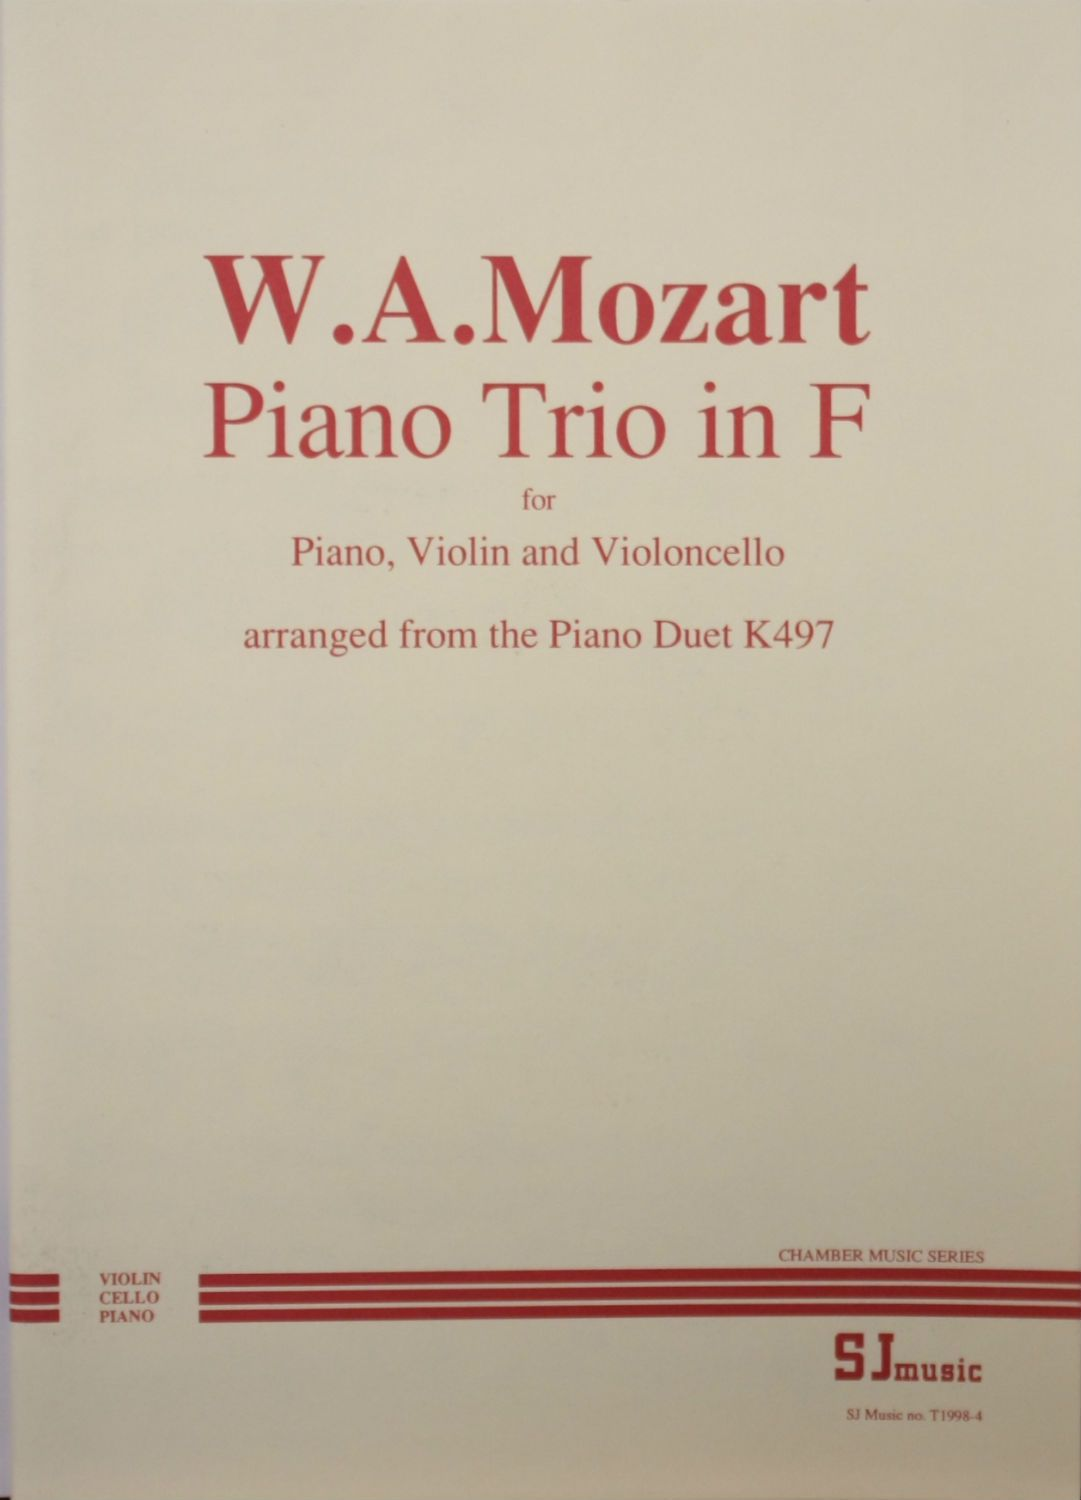 Mozart: Piano Trio in F, from duet K497